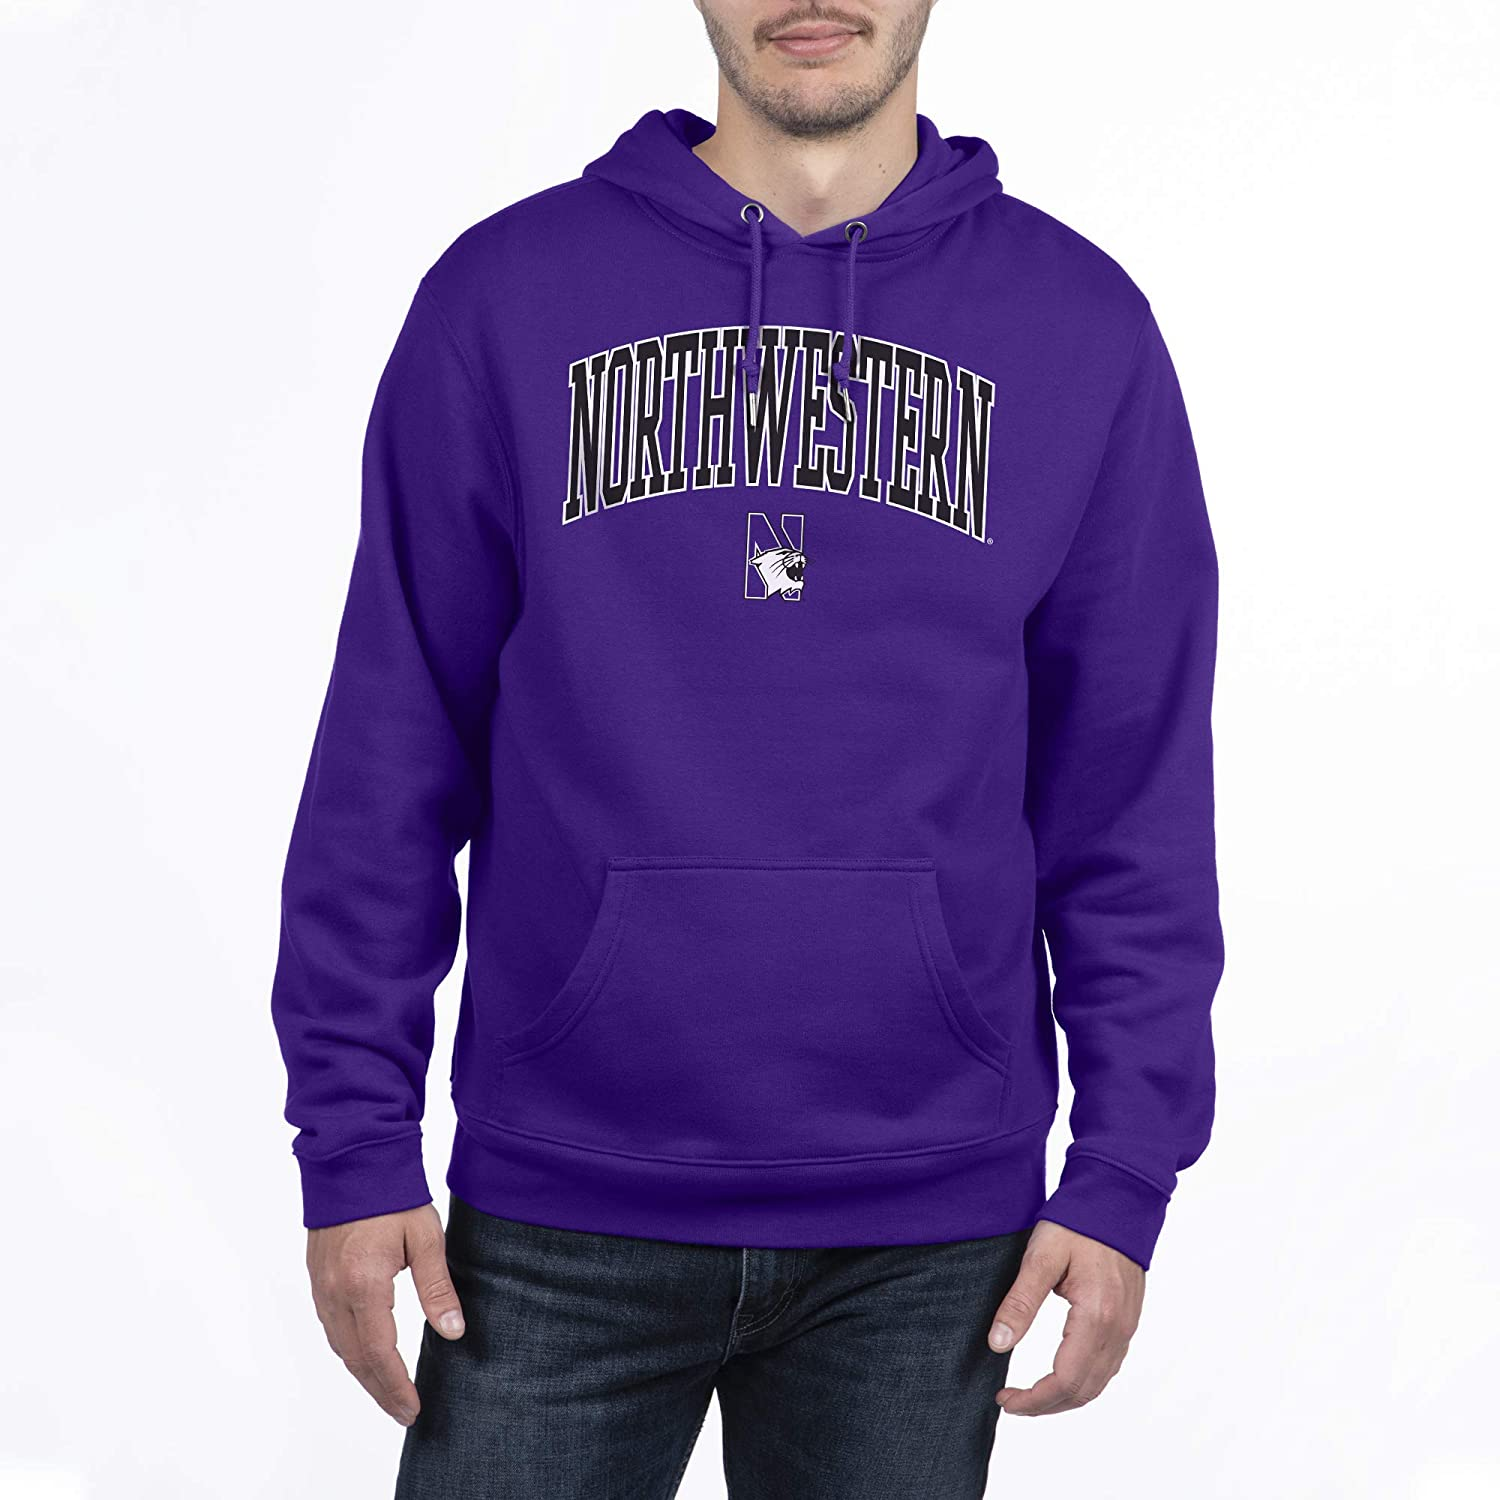 Top of the World Mens Premium Poly Arch Over Hoodie